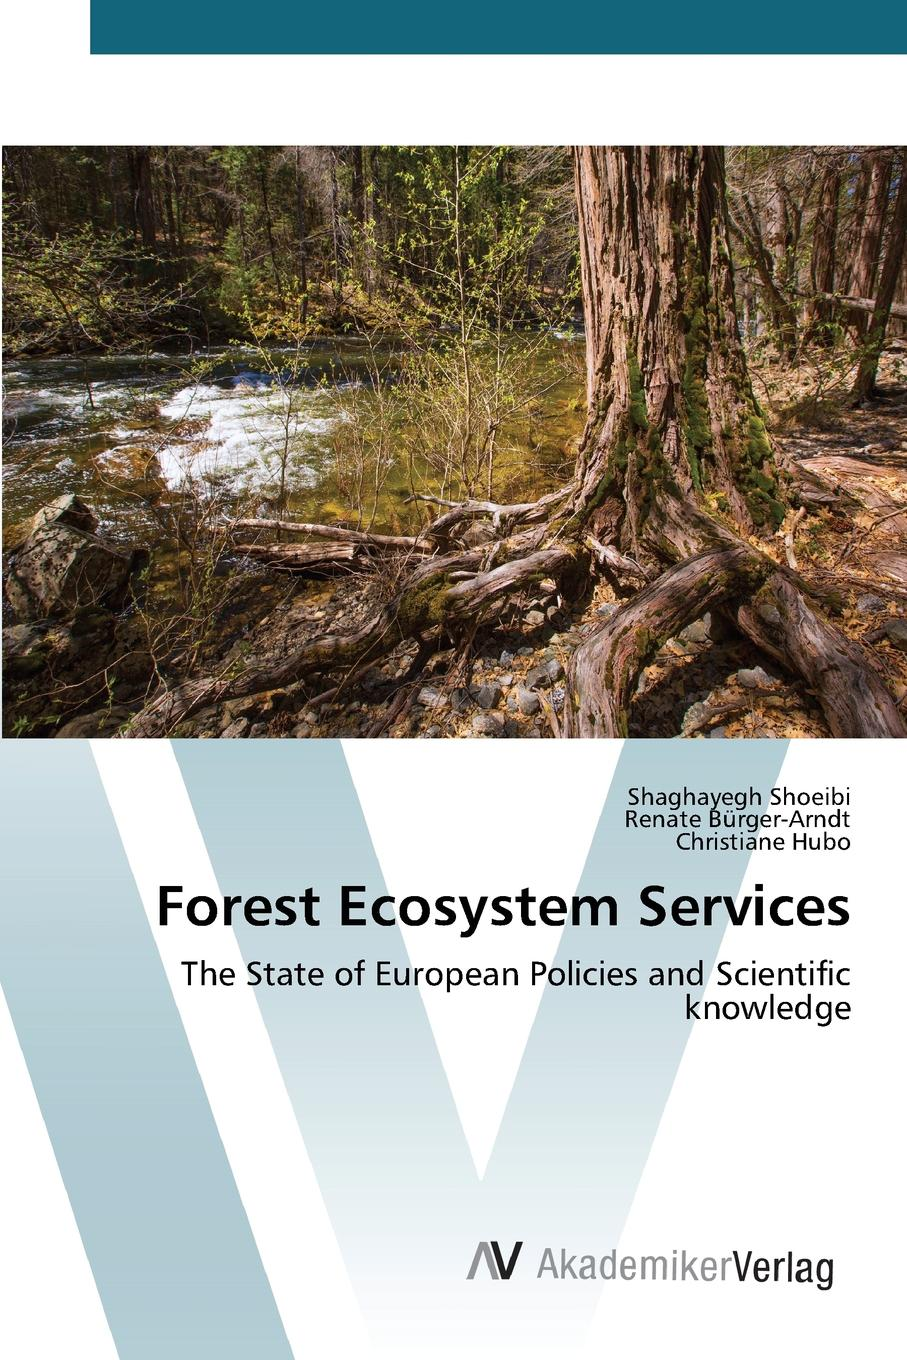 Shoeibi Shaghayegh, Bürger-Arndt Renate, Hubo Christiane Forest Ecosystem Services robert costanza ecosystem services in agricultural and urban landscapes